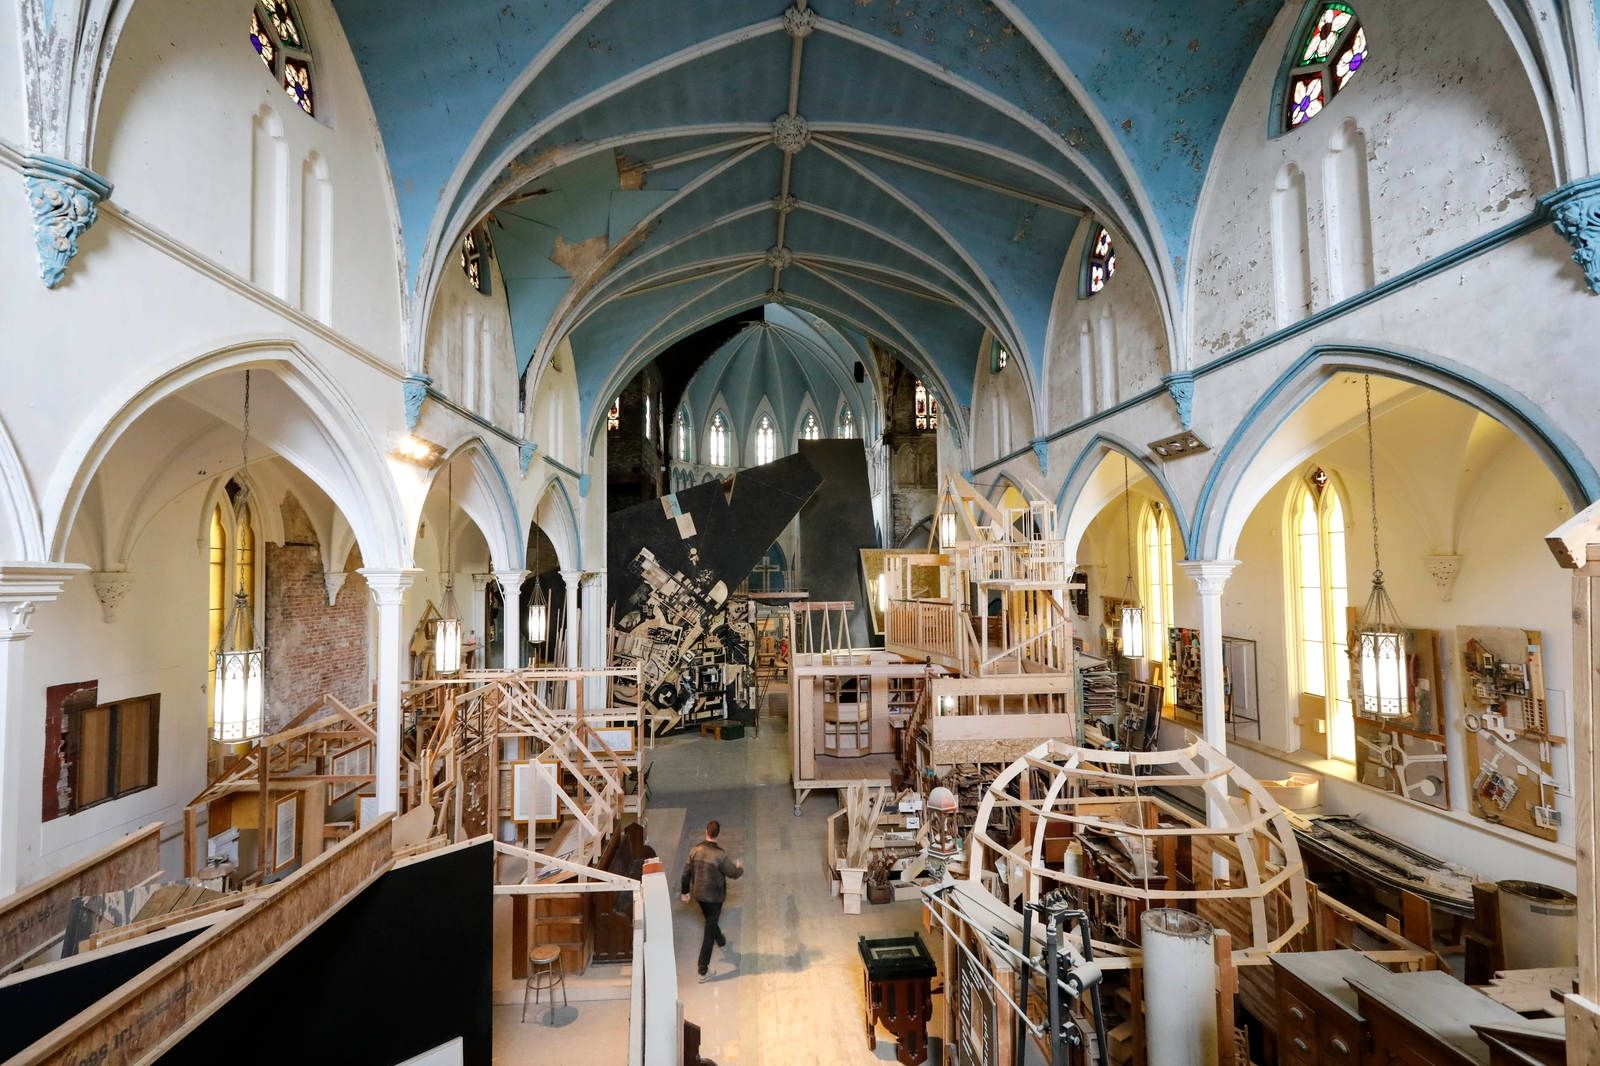 Assembly House 150, a church built in 1870, has been reimagined by architect Dennis Maher as an art gallery, wood shop, architecture studio and home of the Society for the Advancement of Construction Related Arts, or SACRA, which runs education programs to teach the building trades.